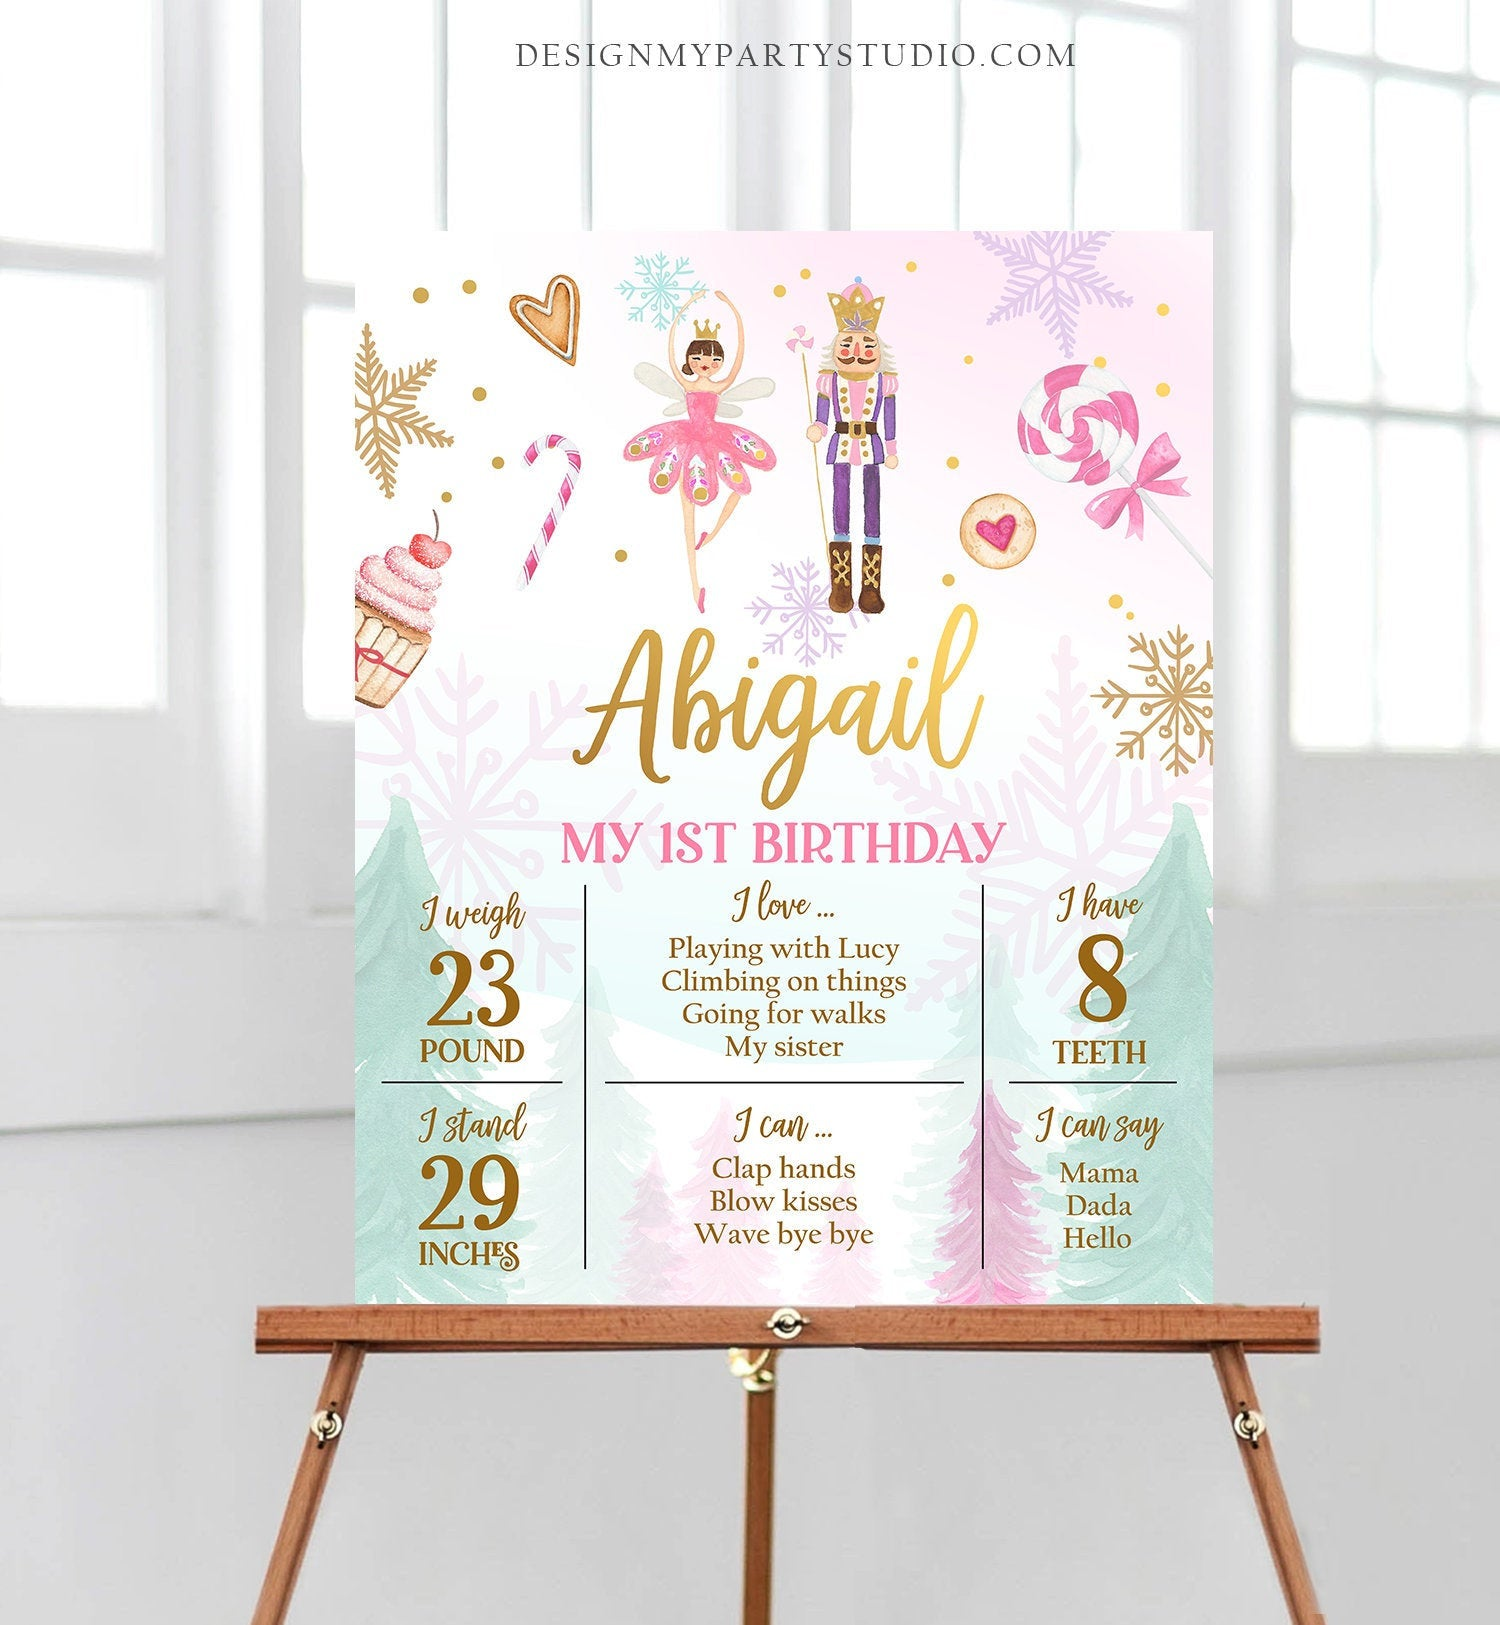 Editable Nutcracker Birthday Milestones Sign Girl First Birthday 1st Birthday Land of Sweets Milestone Board Corjl Template Printable 0352